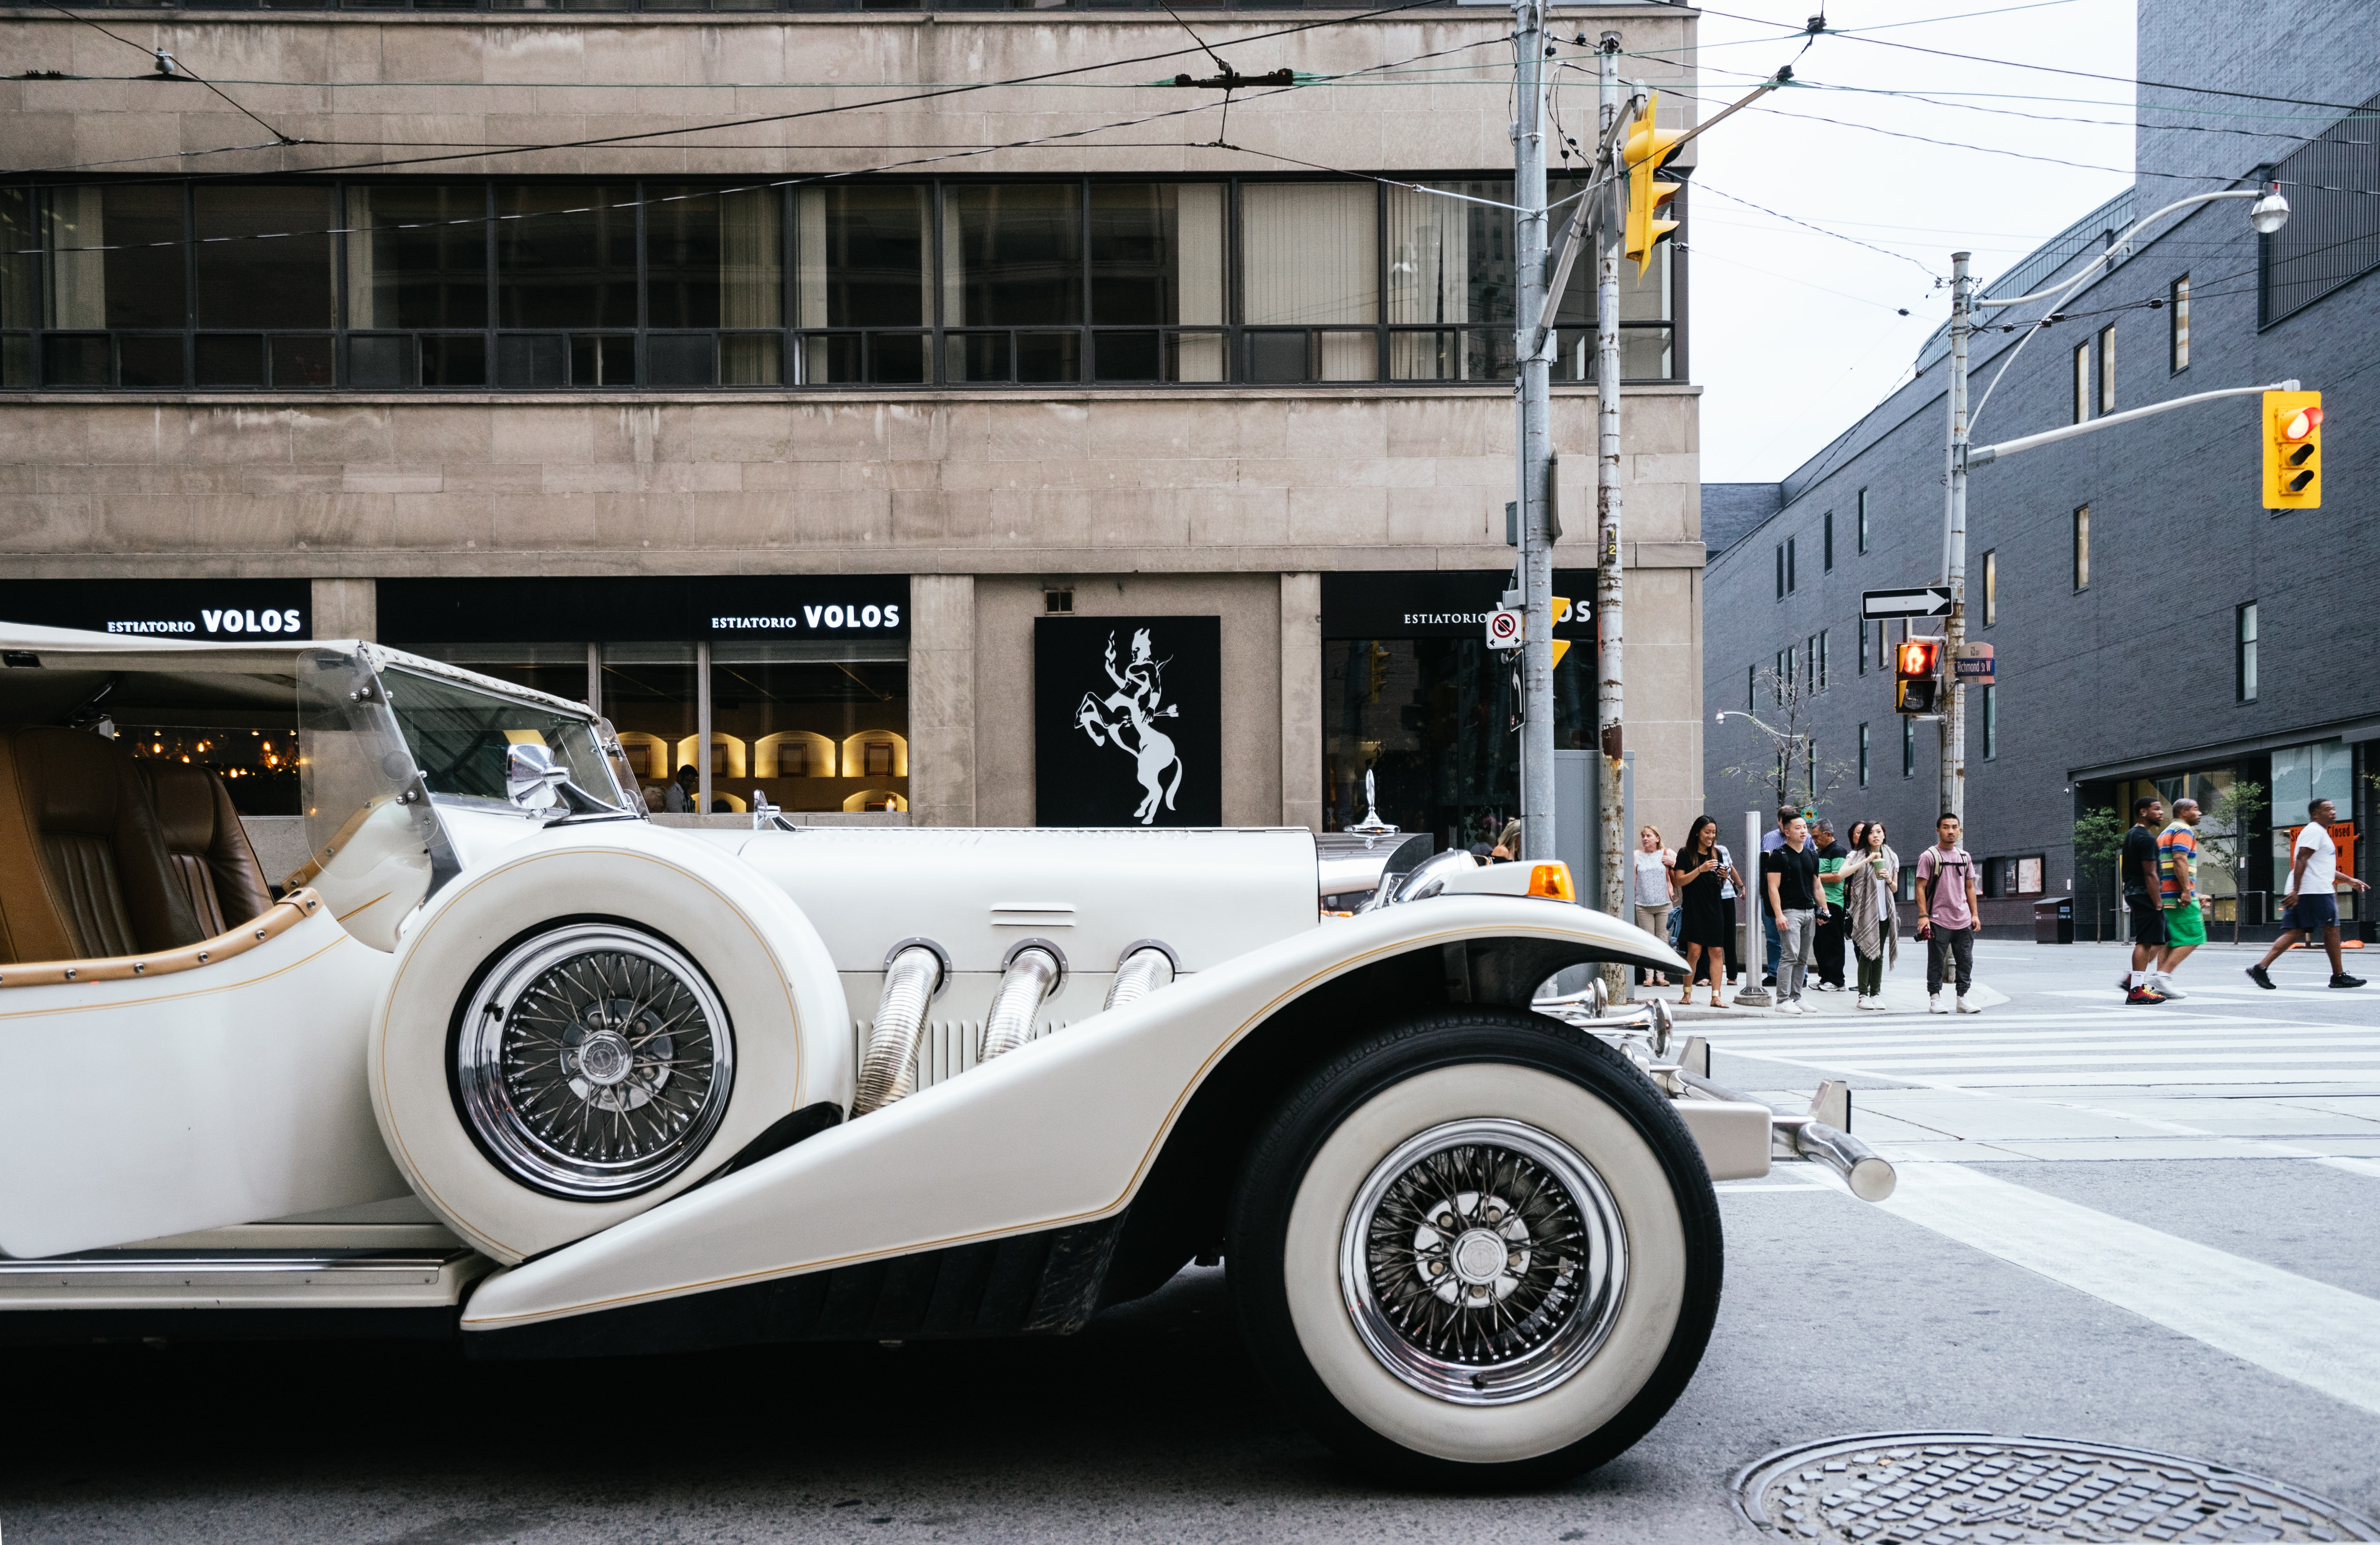 A white vintage automobile parked on the side of a Toronto street